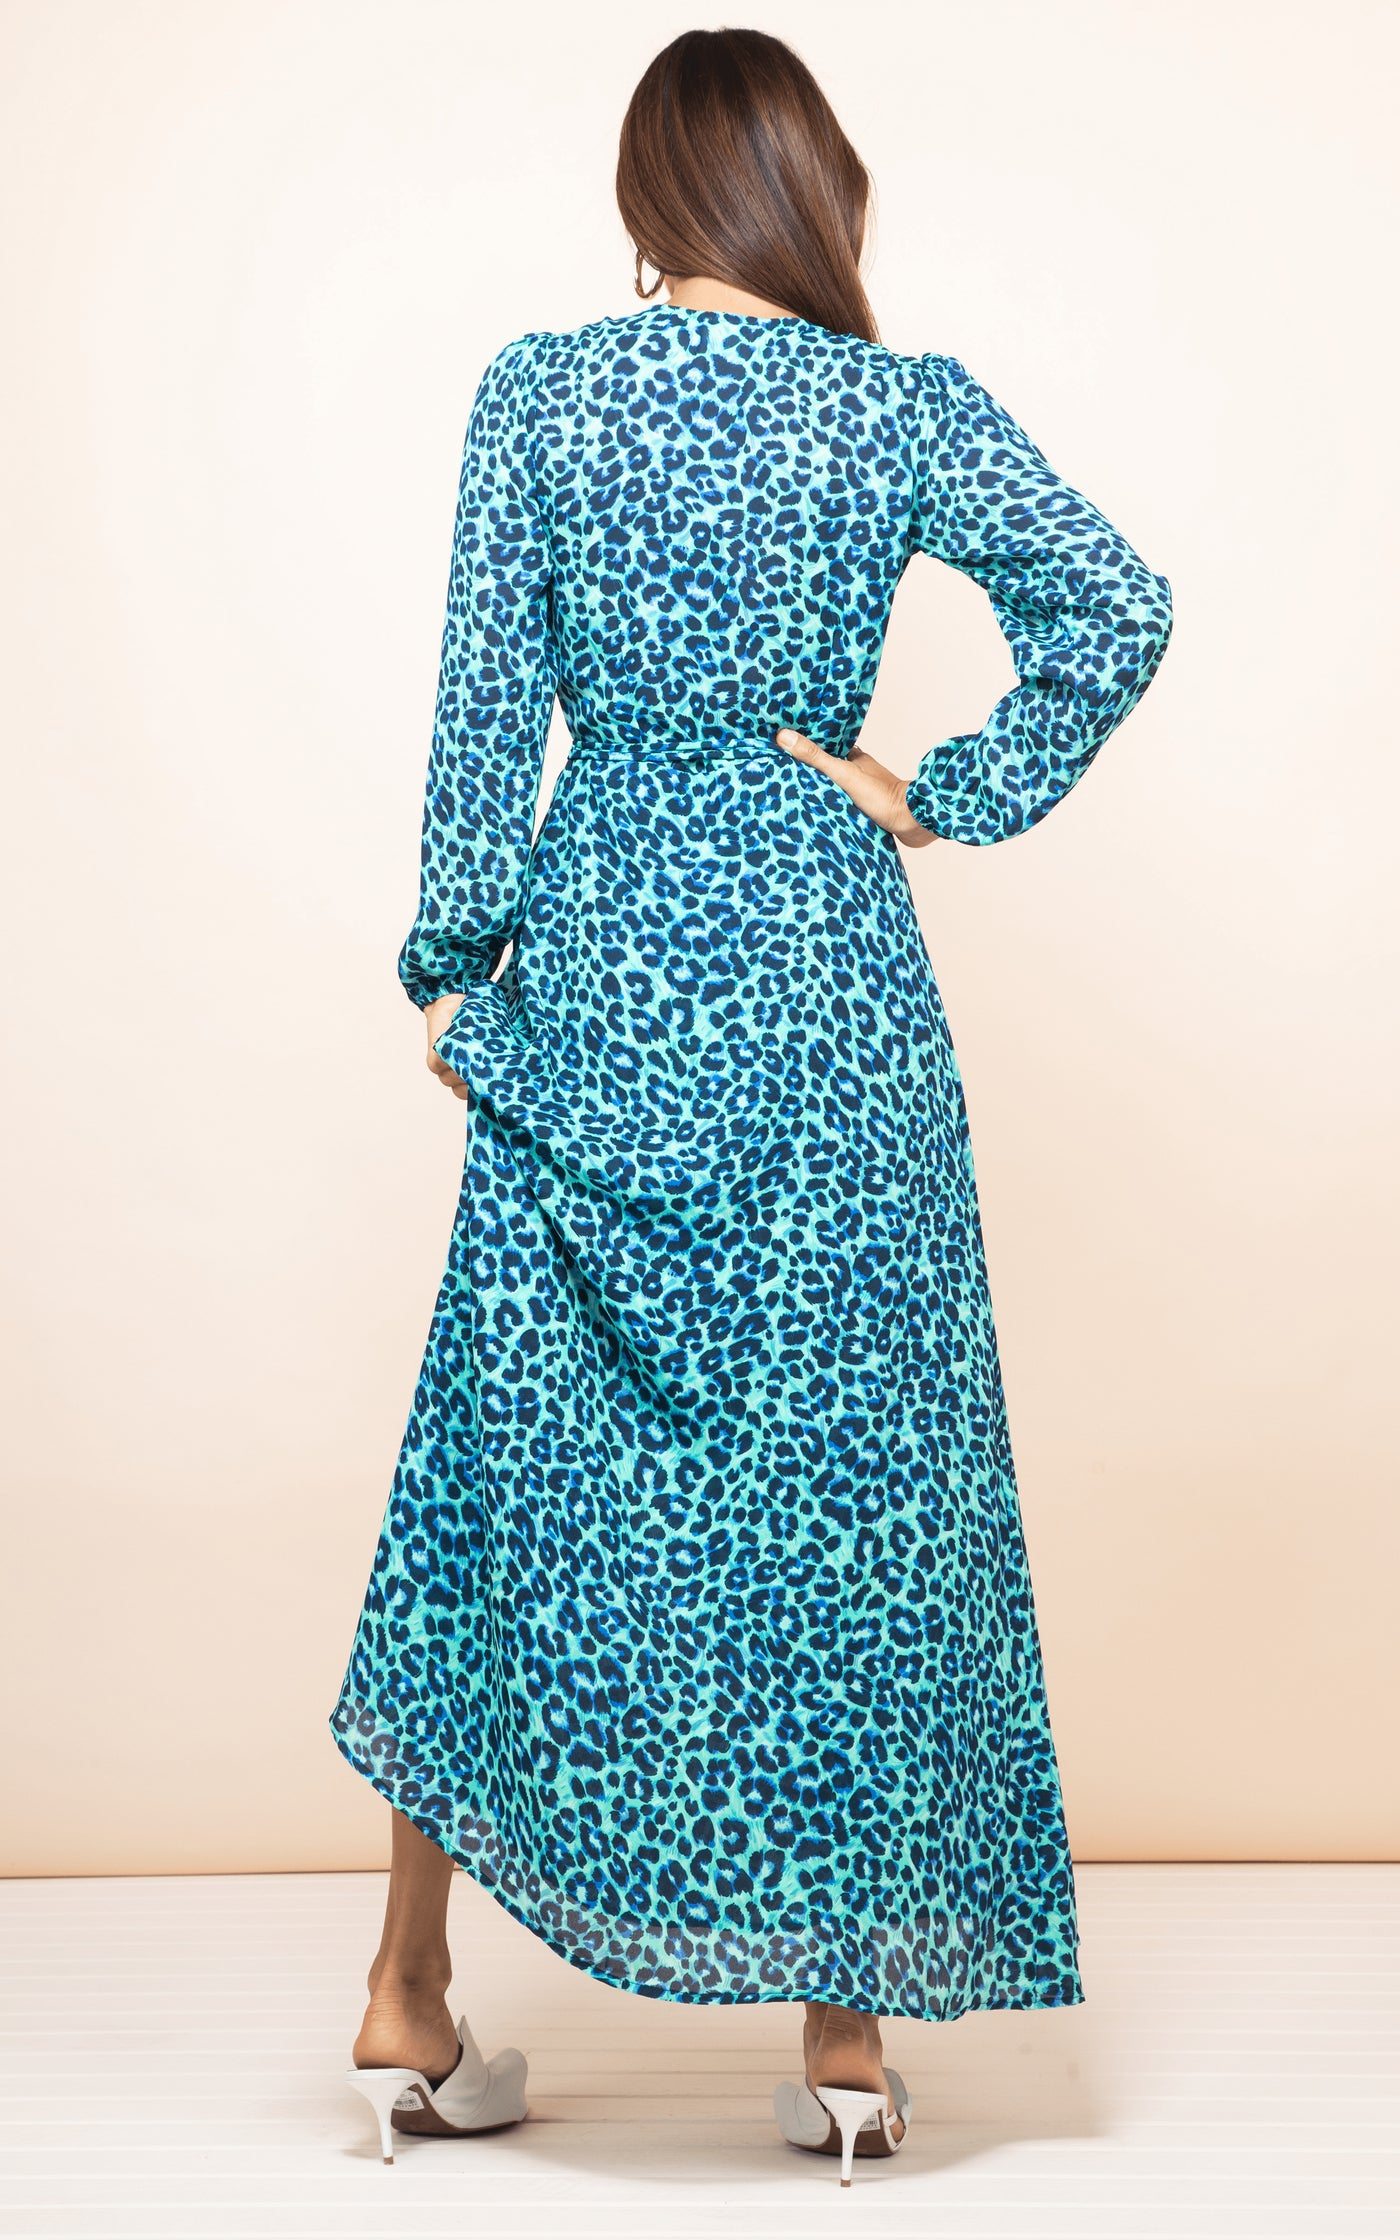 Backward-facing model with hand on hip wears Jagger Maxi Dress in turquoise leopard print